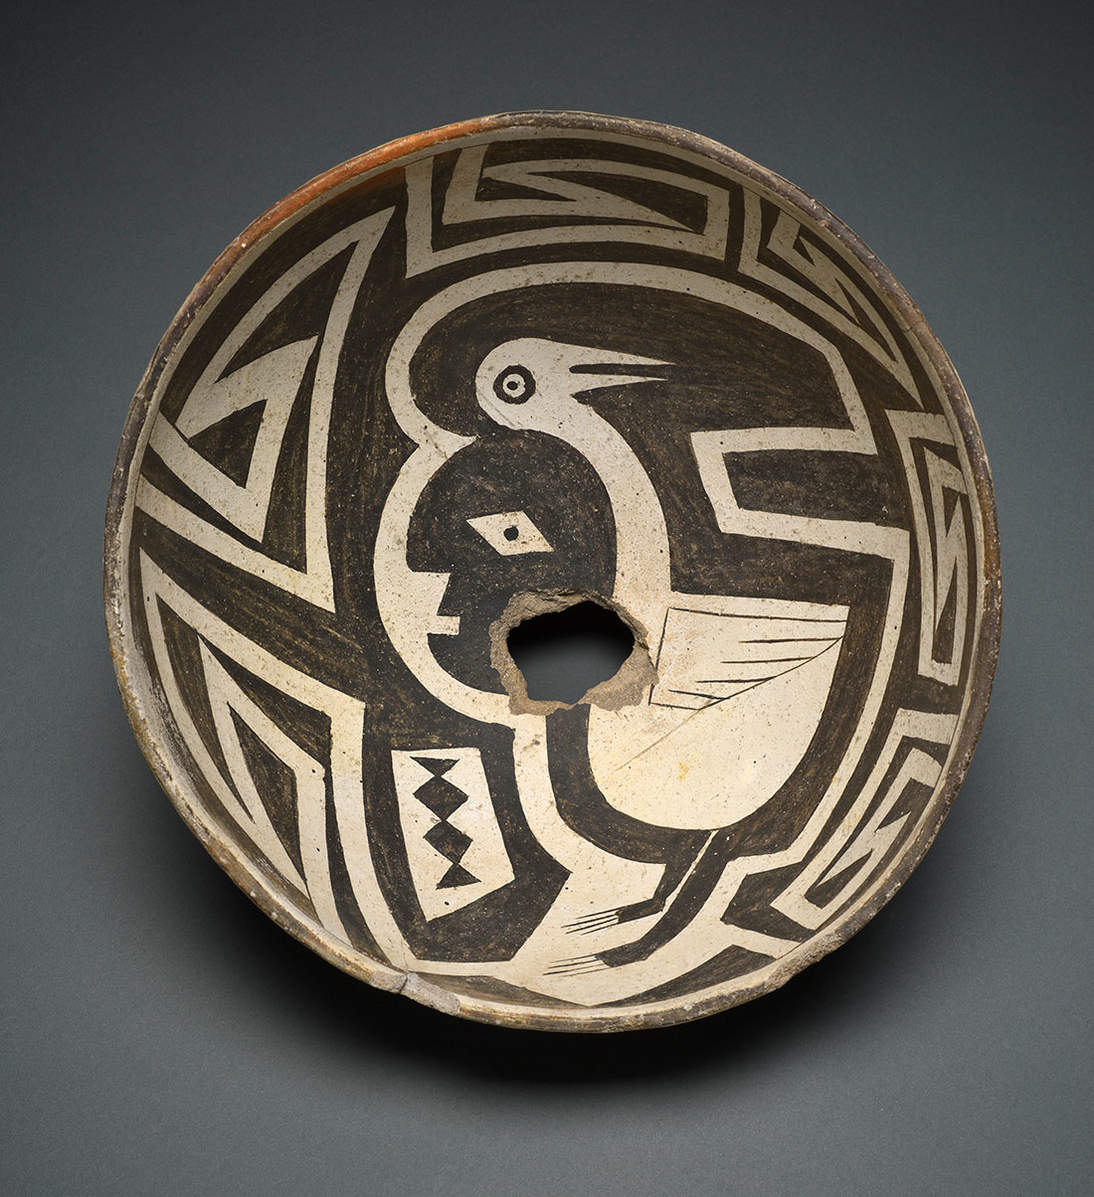 Bowl with human-avian figure. Mimbres artist, New Mexico, United States, ca. 1000–1150. Earthenware and pigment. Diameter: 9 3/4 in. (24.7 cm). Fine Arts Museums of San Francisco, Gift of the Thomas W. Weisel Family, 2013.76.99